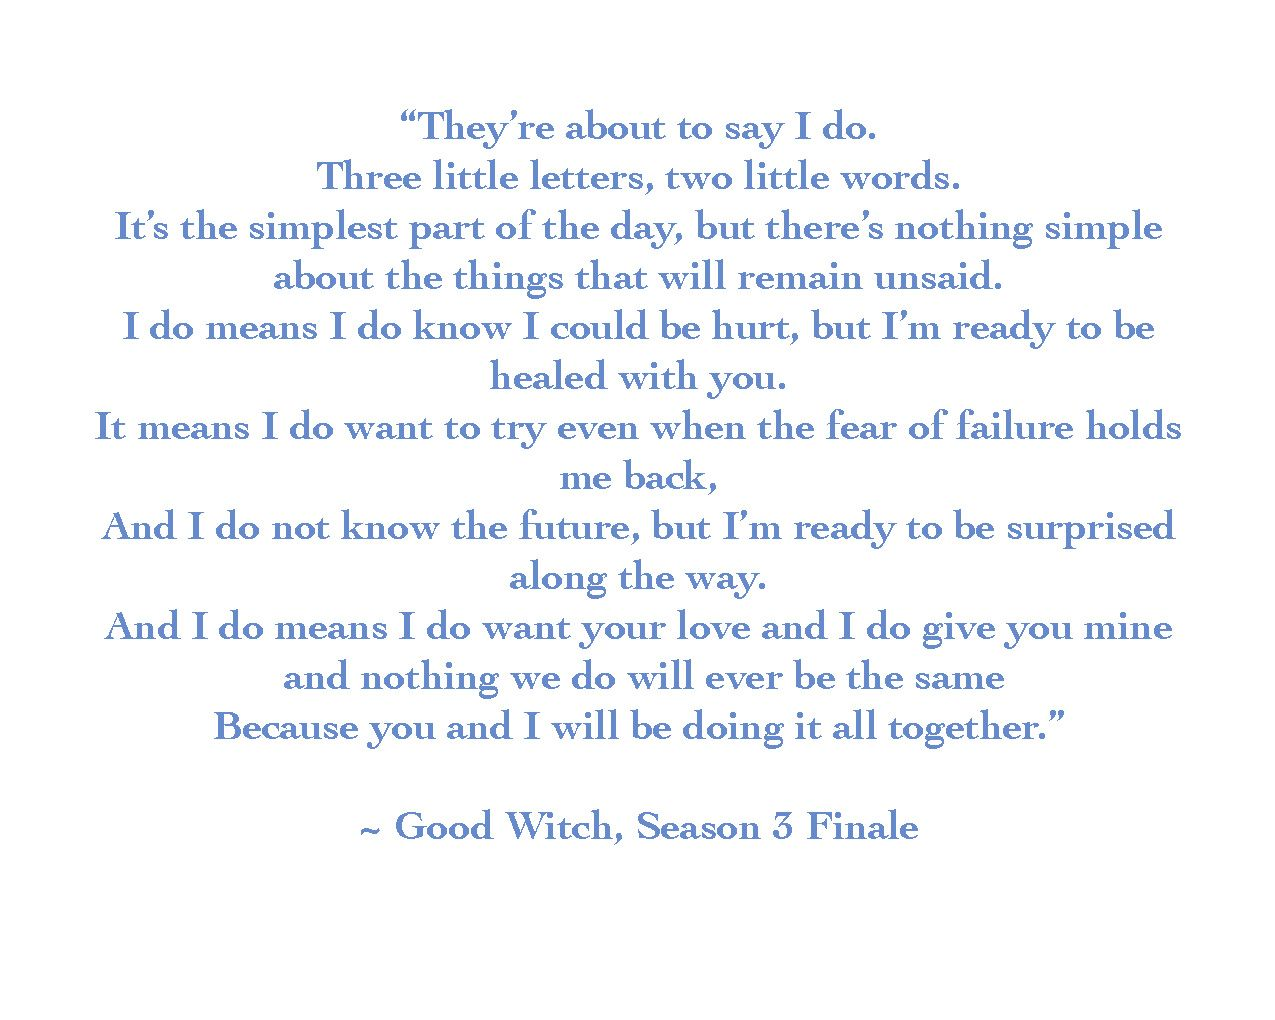 I Love This Poem From The Good Witch Season 3 Finale I Think It